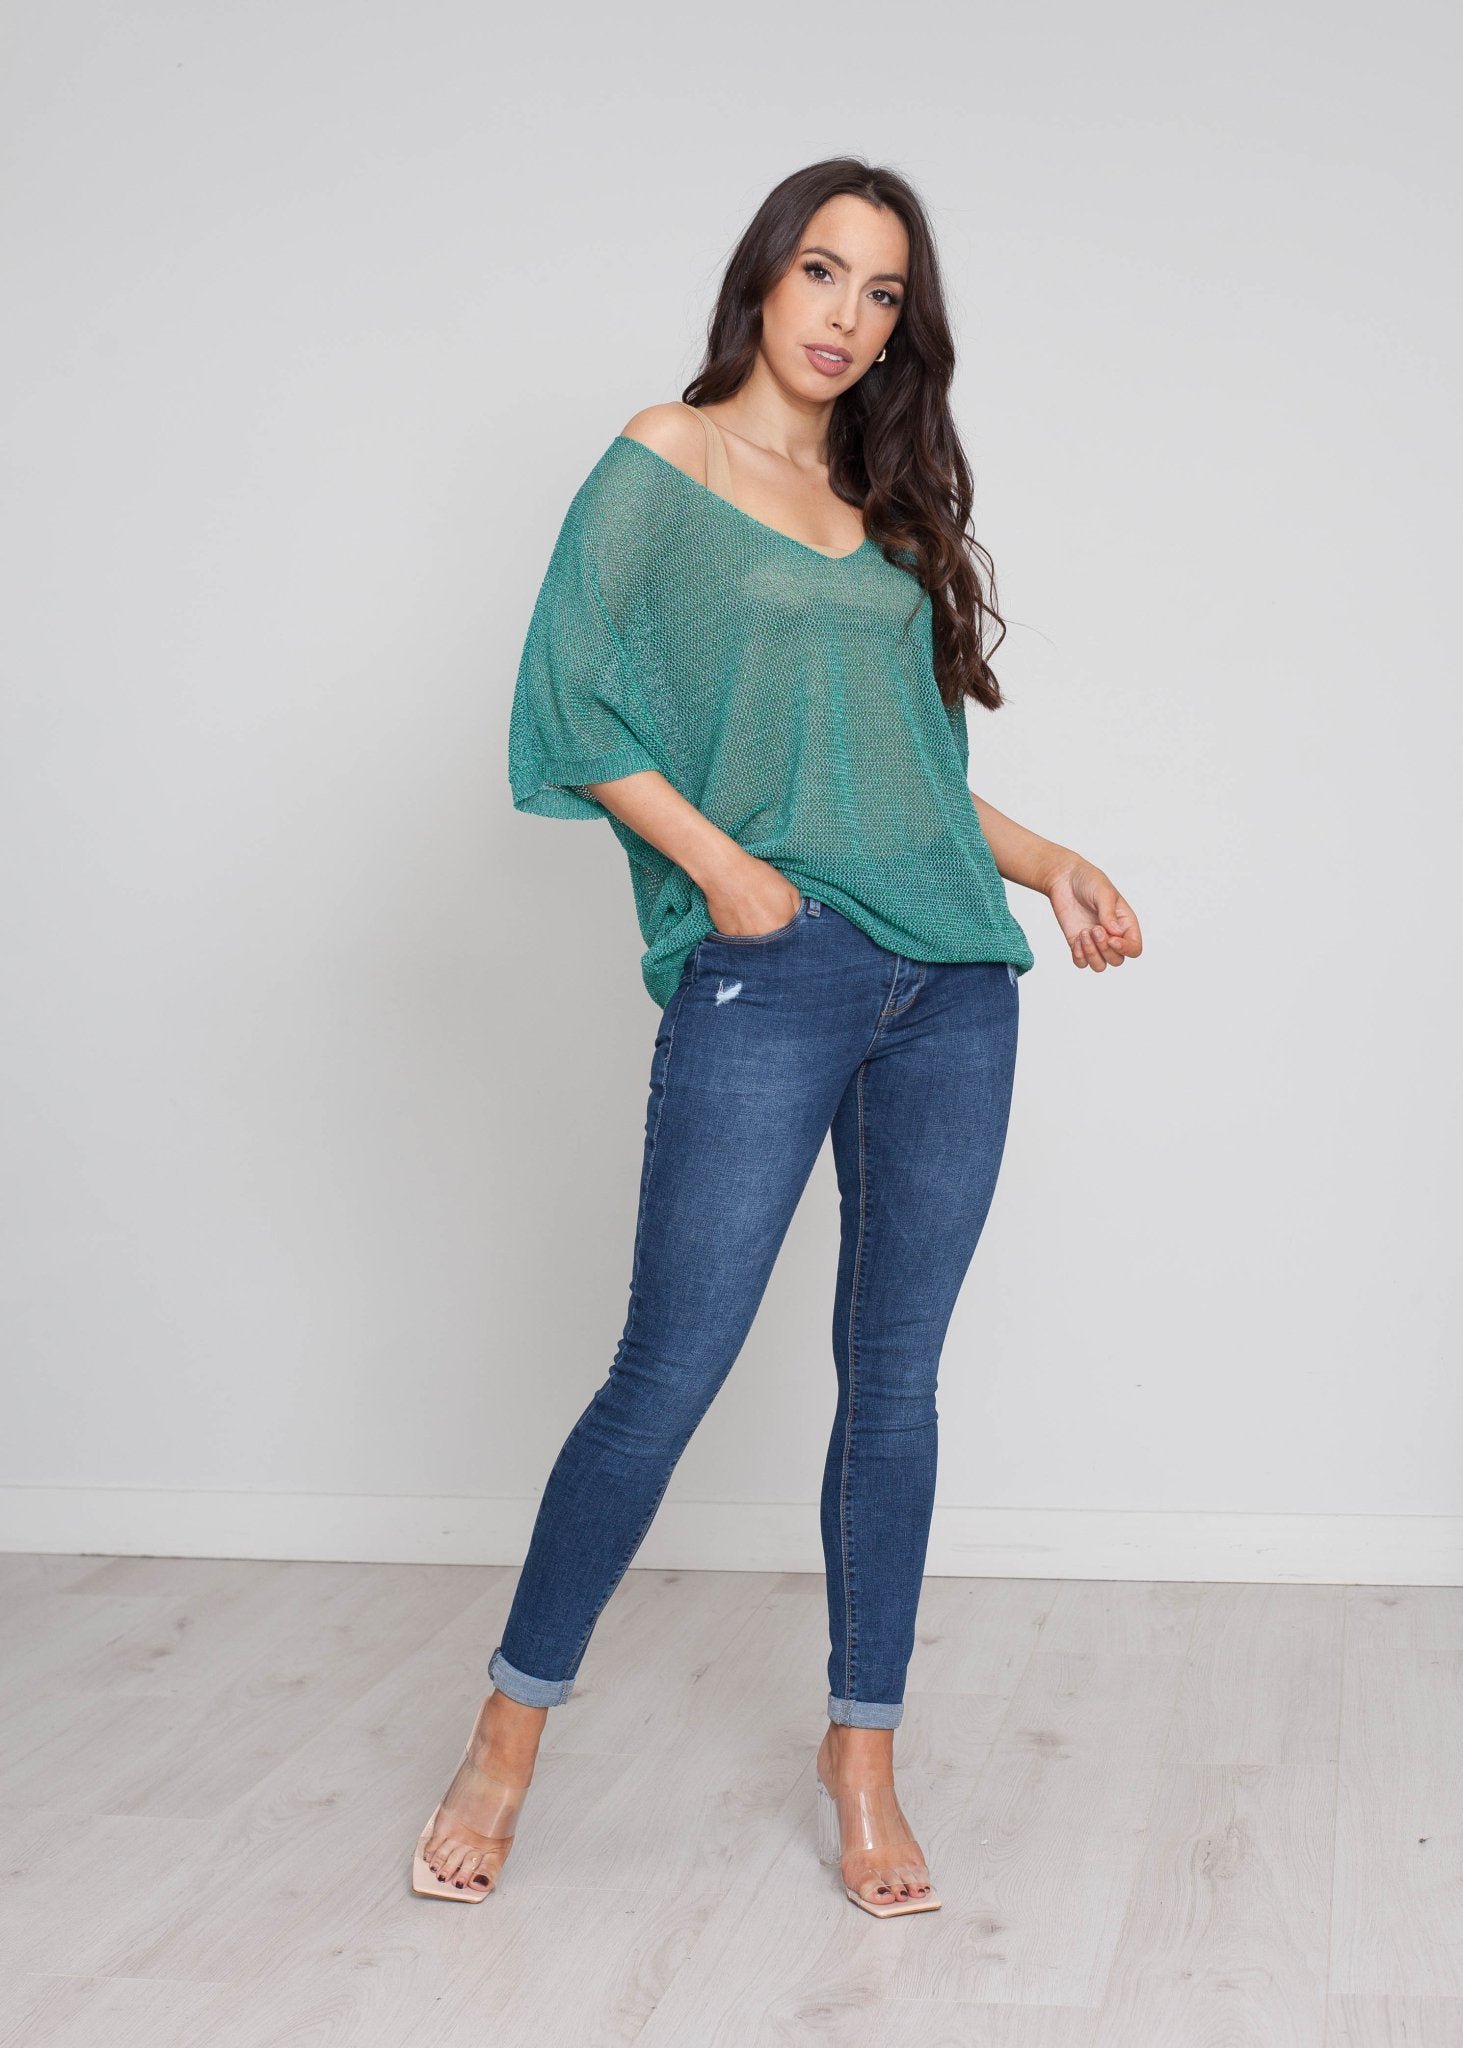 Heidi Shimmer Knit In Jade - The Walk in Wardrobe